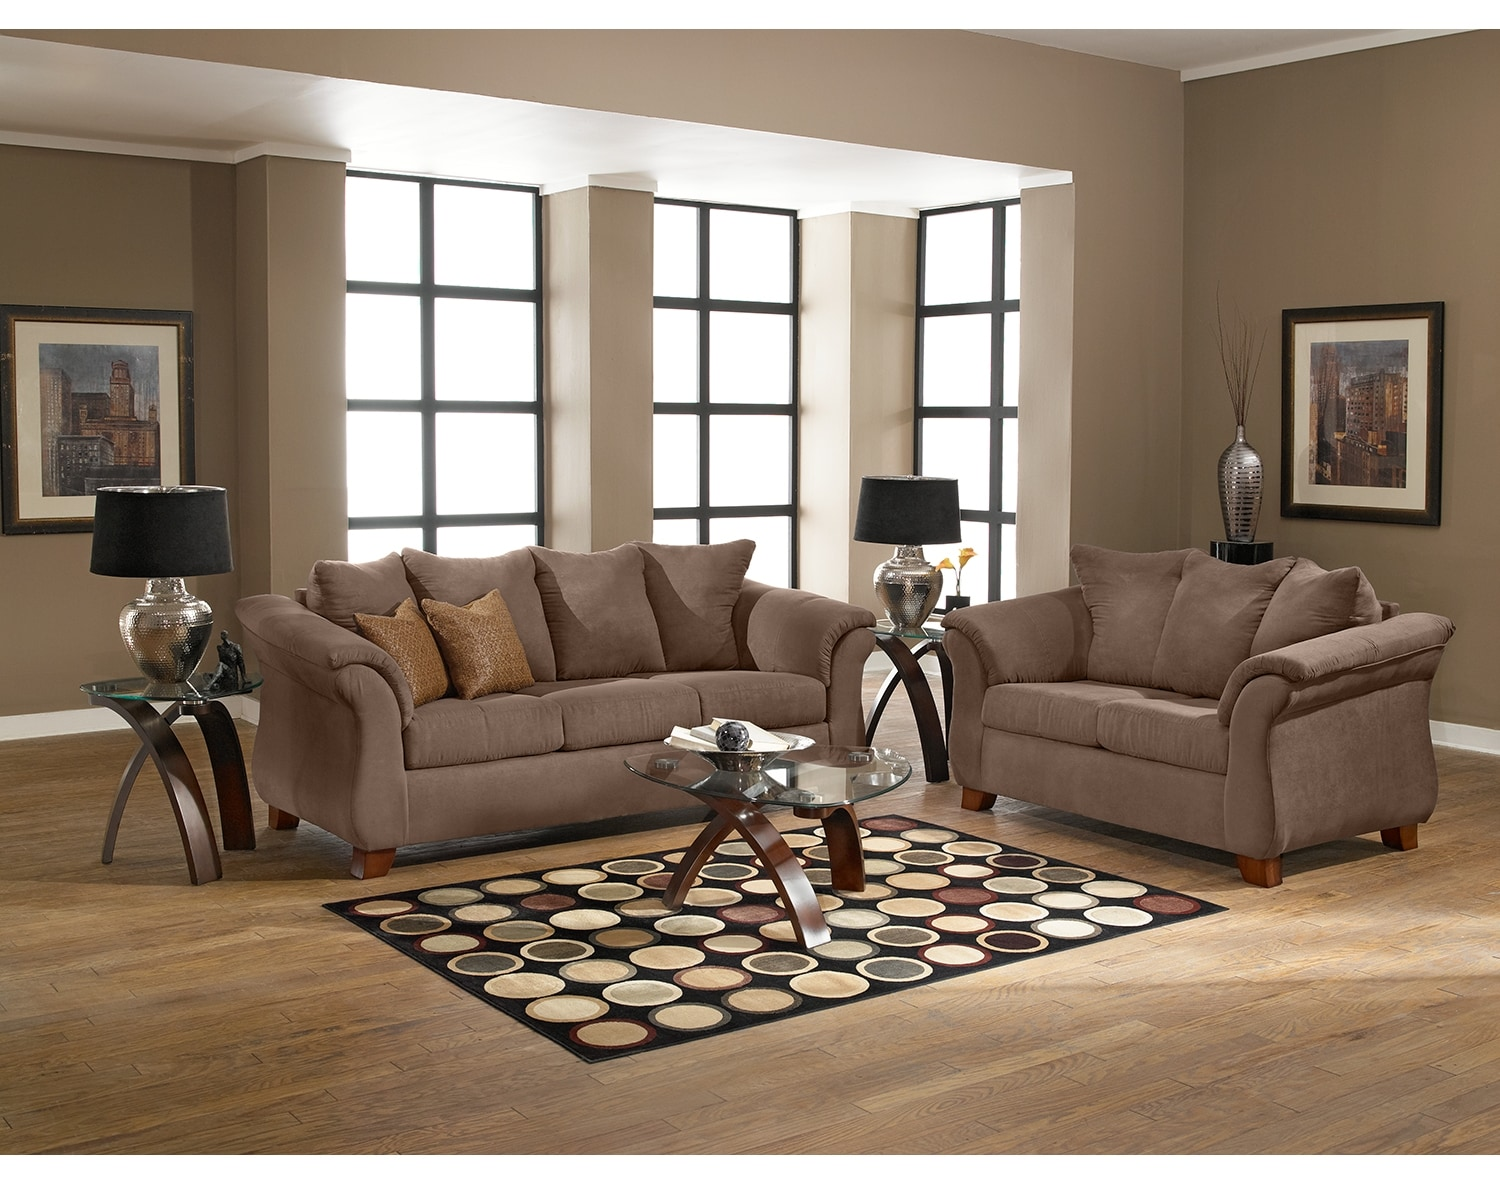 Living Room Furniture - The Perry Taupe Collection - Sofa